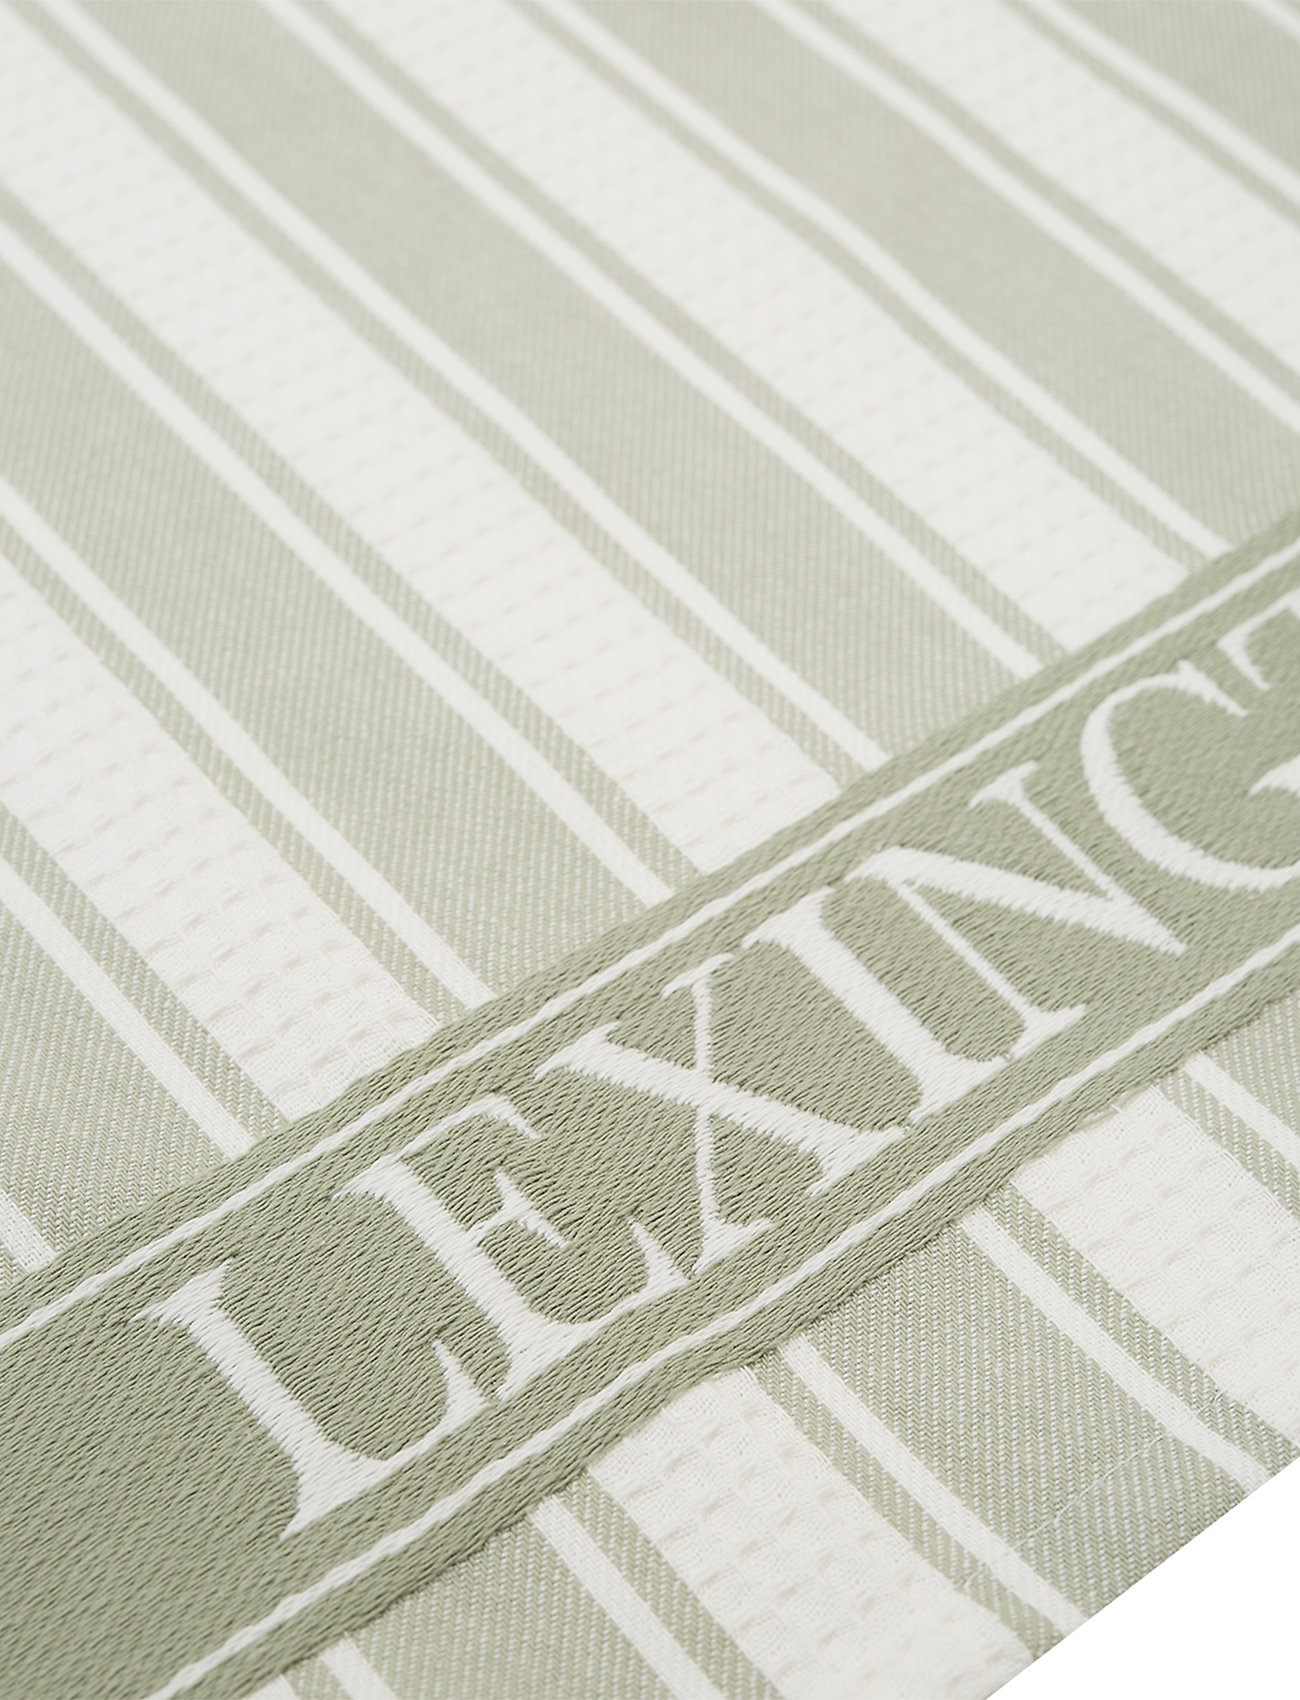 Lexington Home - Icons Cotton Twill Waffle Striped Kitchen Towel - ręczniki kuchenne - sage green/white - 1